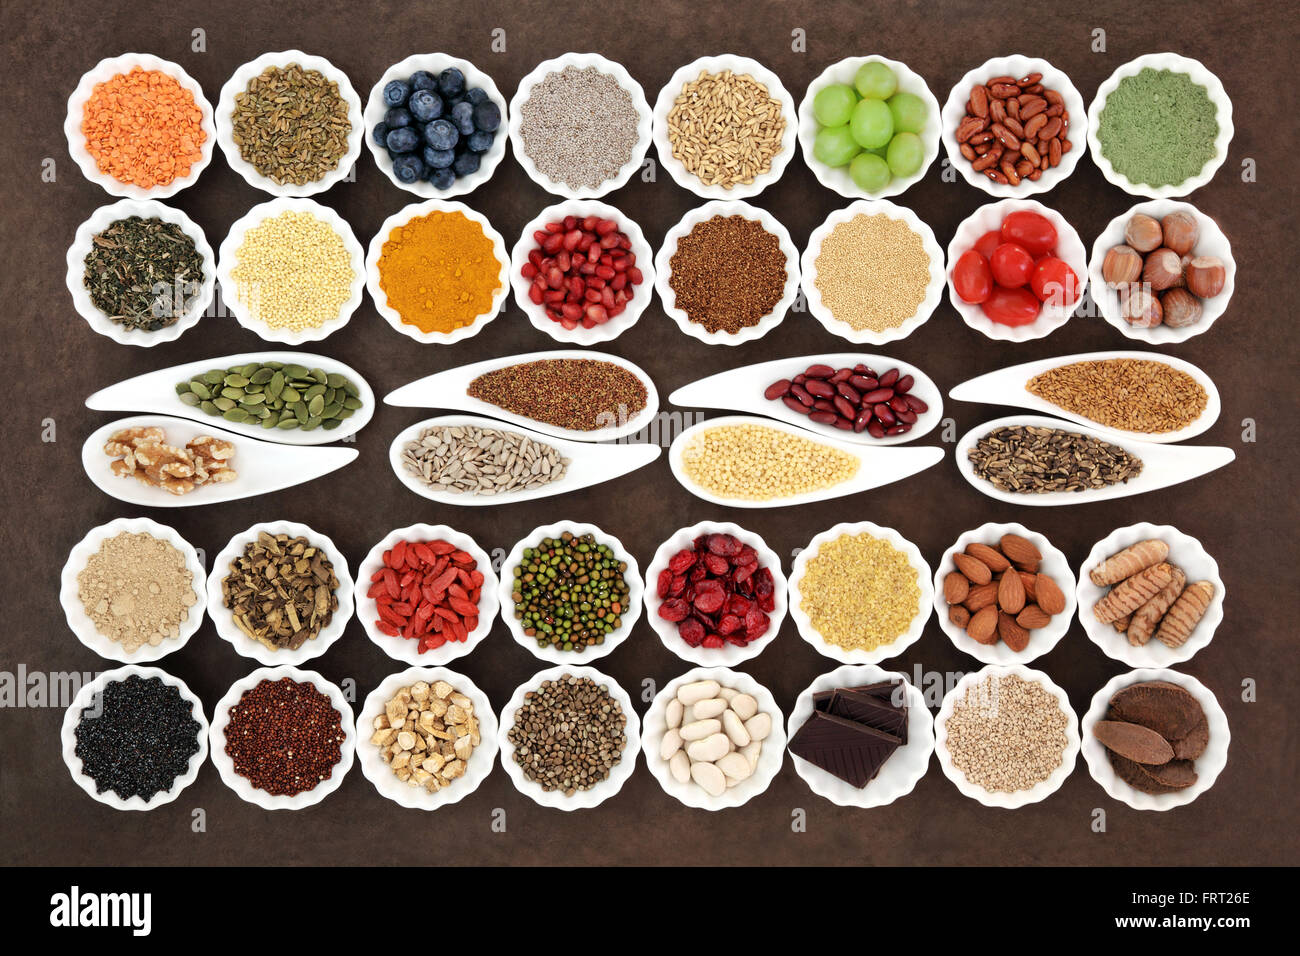 Health and diet super food selection in porcelain dishes over lokta paper background. High in vitamins and antioxidants. - Stock Image